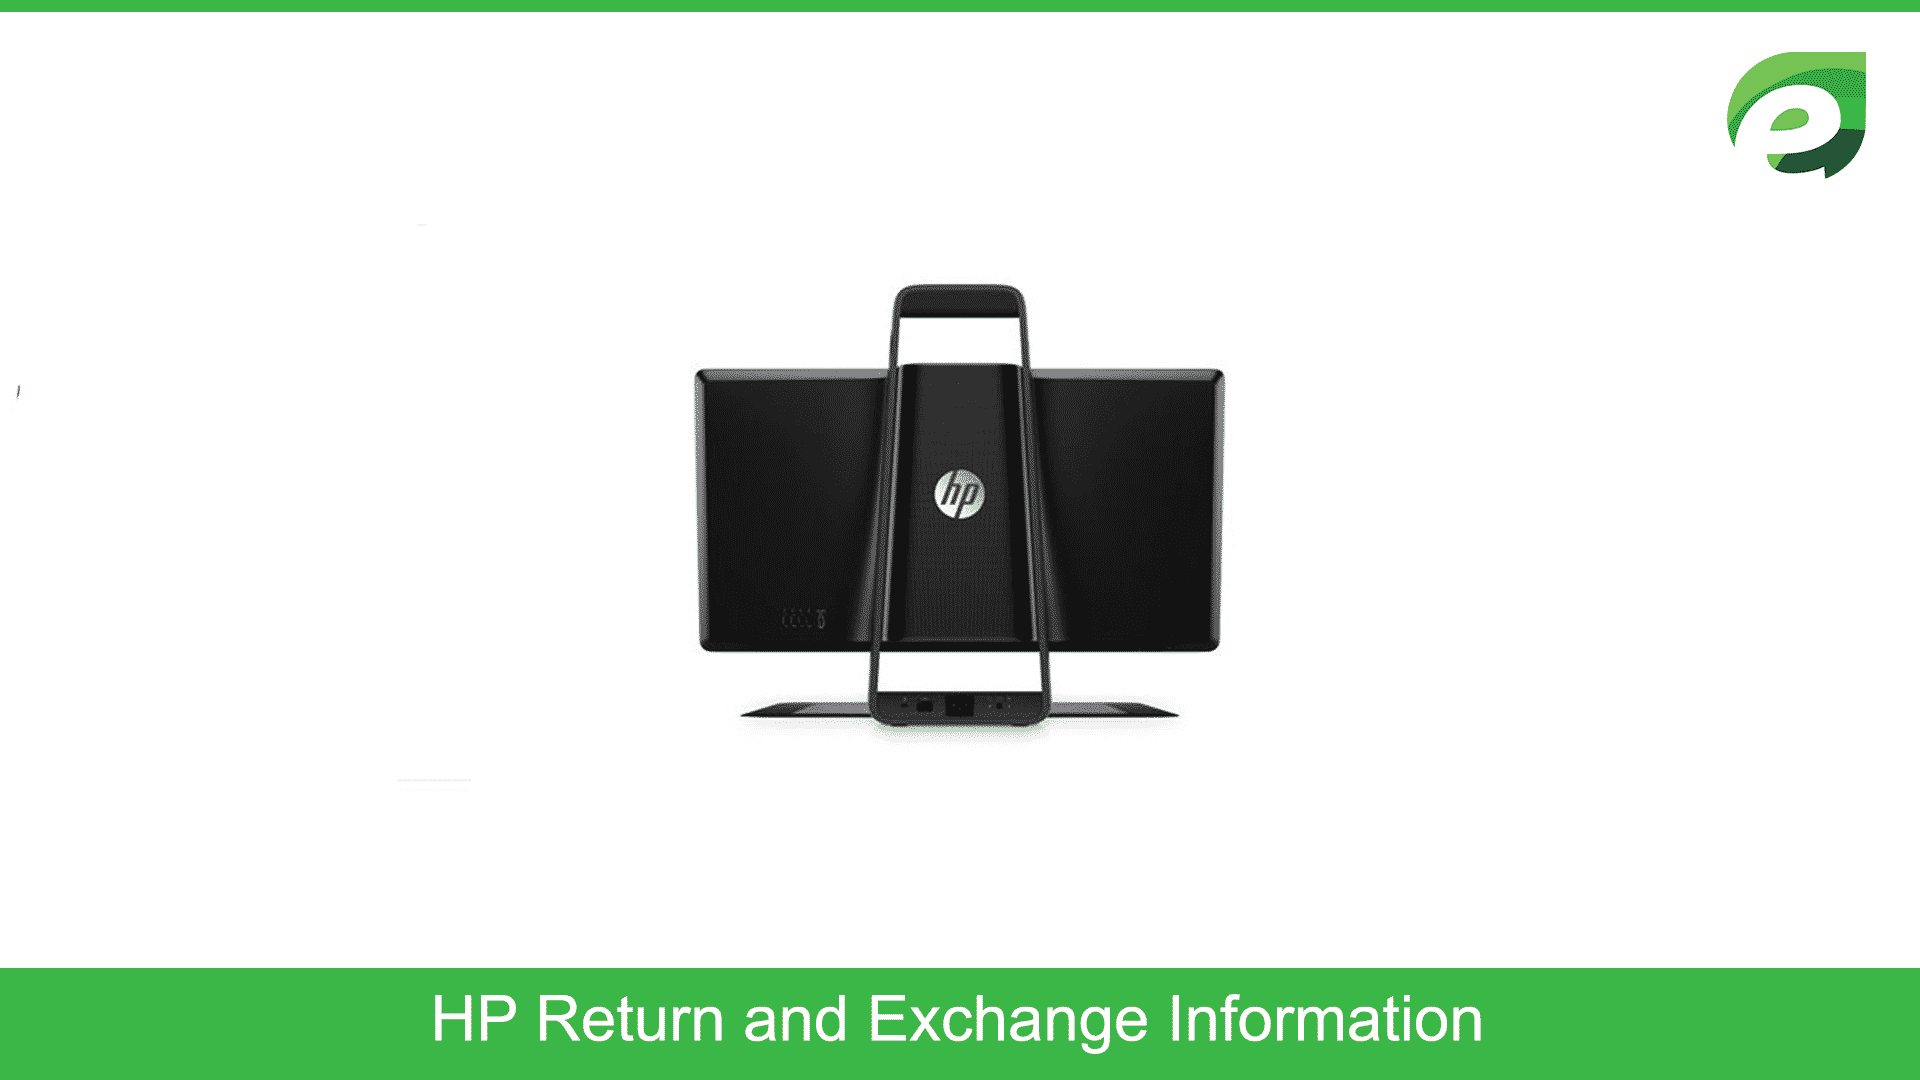 hp sprout G2- return